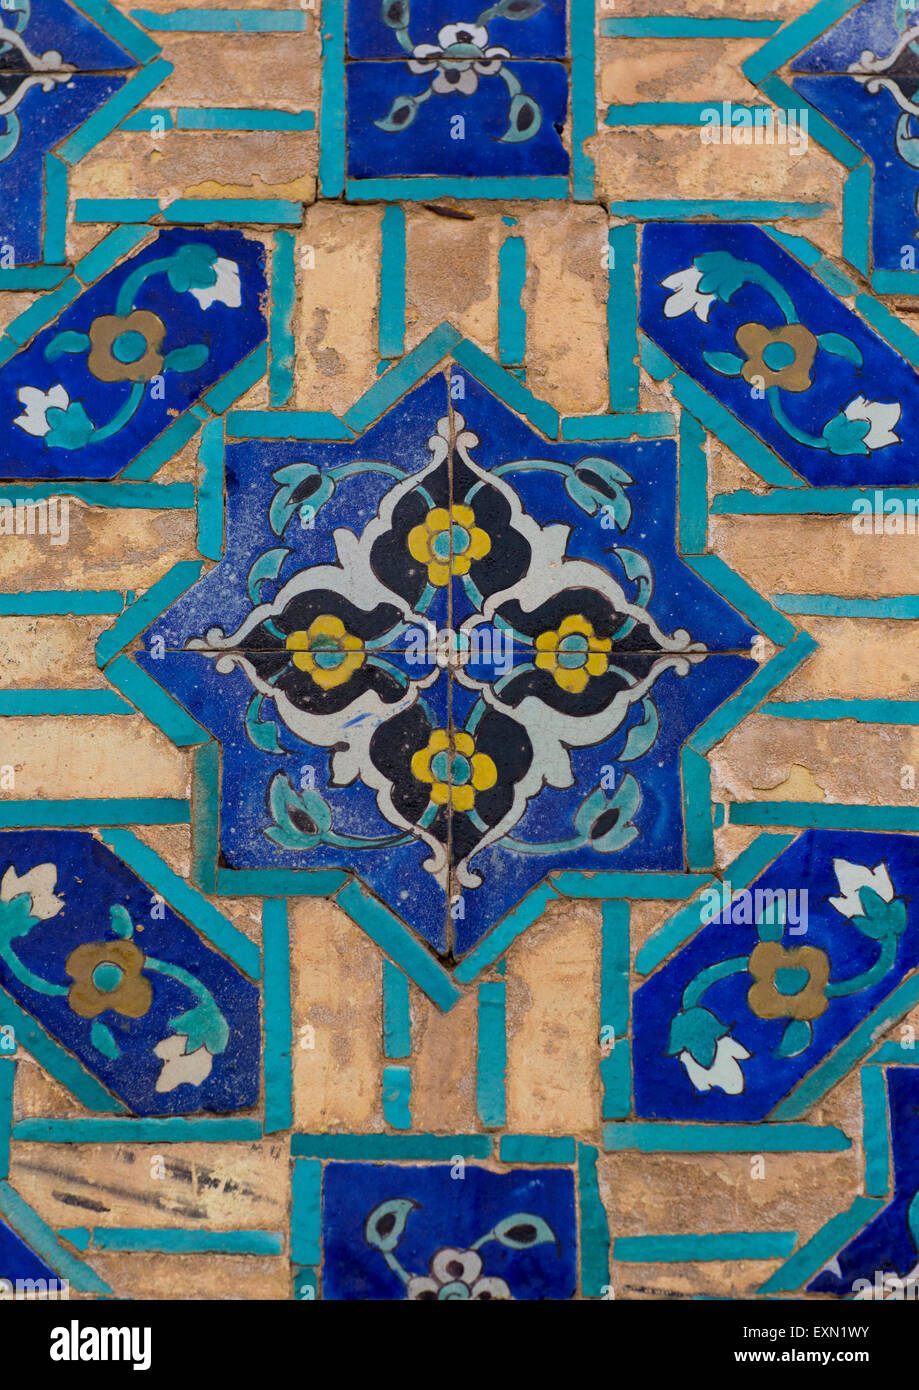 Mosaic pattern with ceramic tiles in friday mosque isfahan province mosaic pattern with ceramic tiles in friday mosque isfahan province isfahan iran dailygadgetfo Images